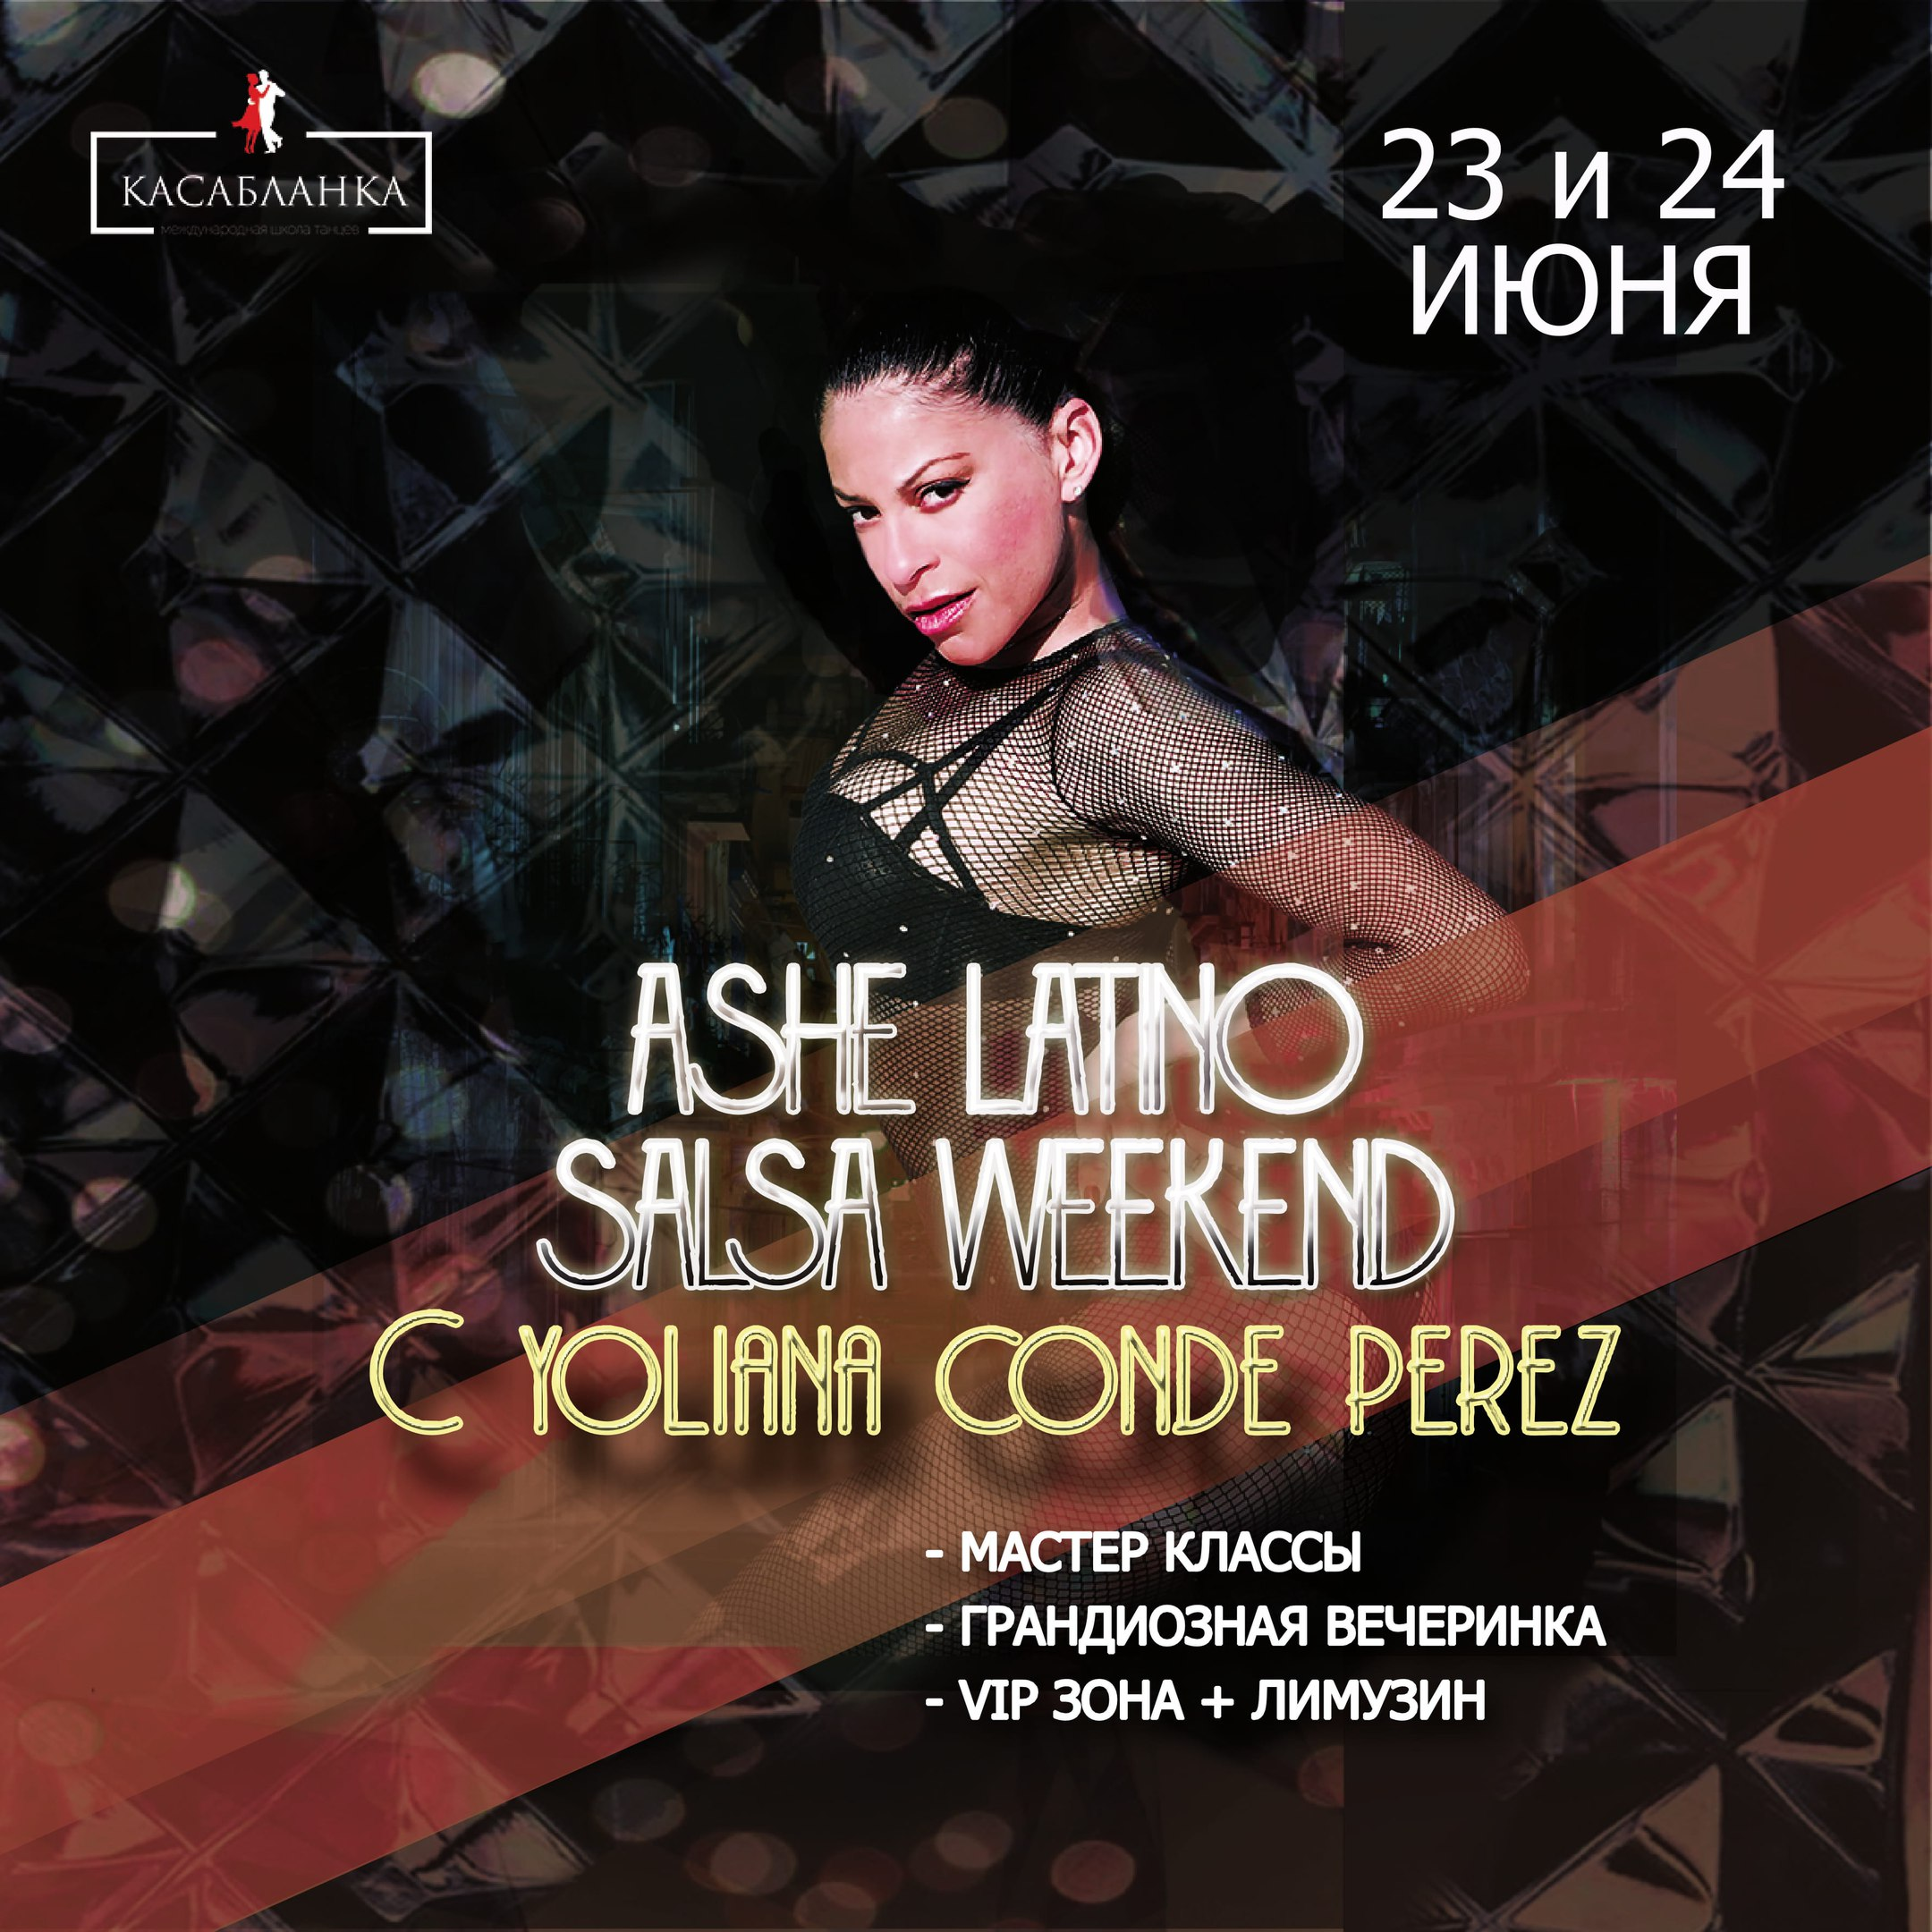 ASHE LATINO SALSA WEEKEND C YOLIANA CONDE PEREZ